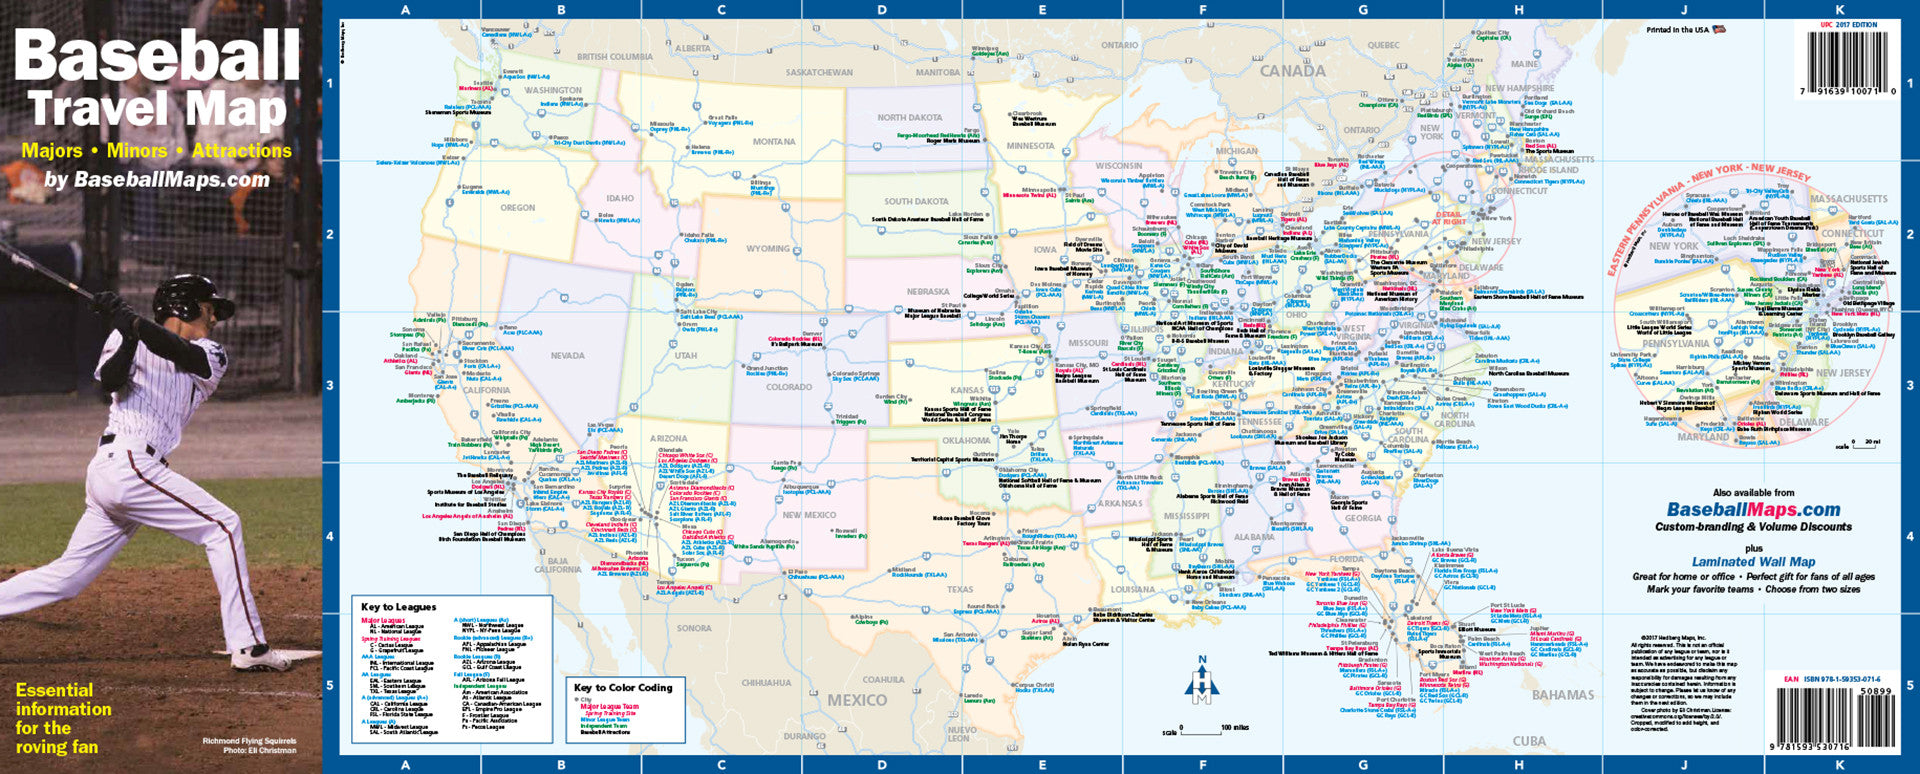 Major League Baseball Map With All Ball Clubs Showing Each A - Us baseball map